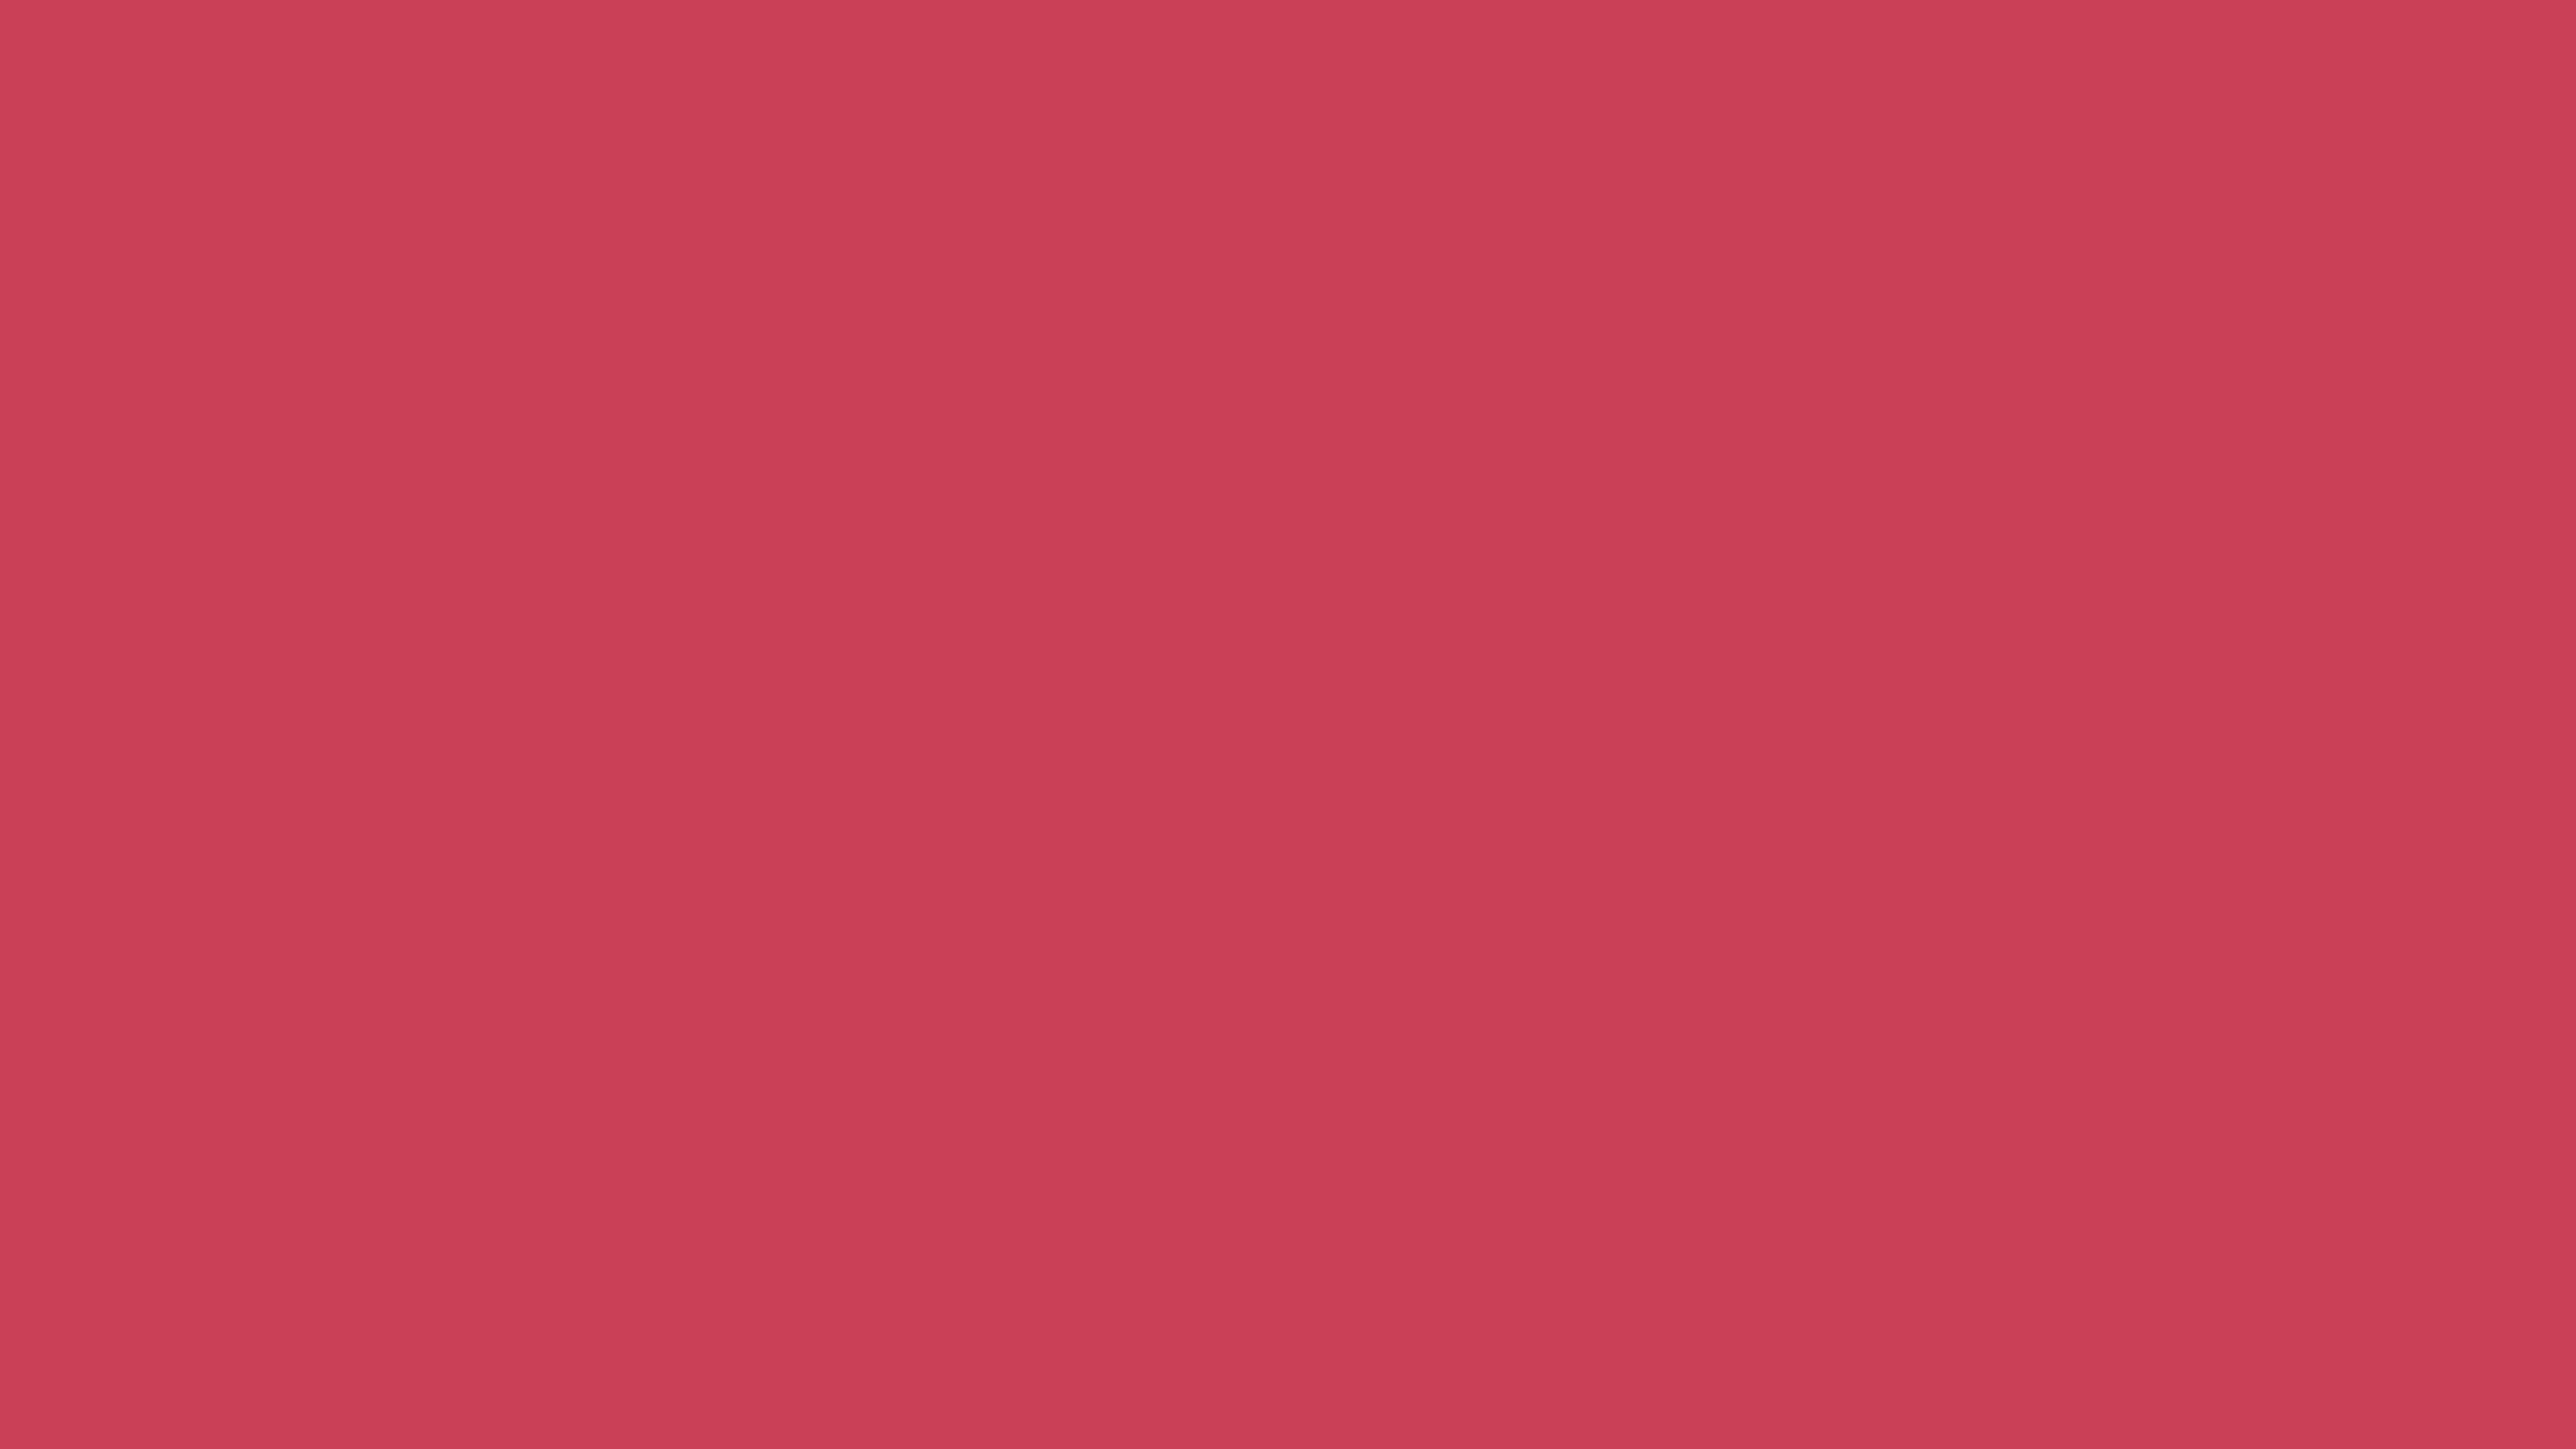 4096x2304 Brick Red Solid Color Background